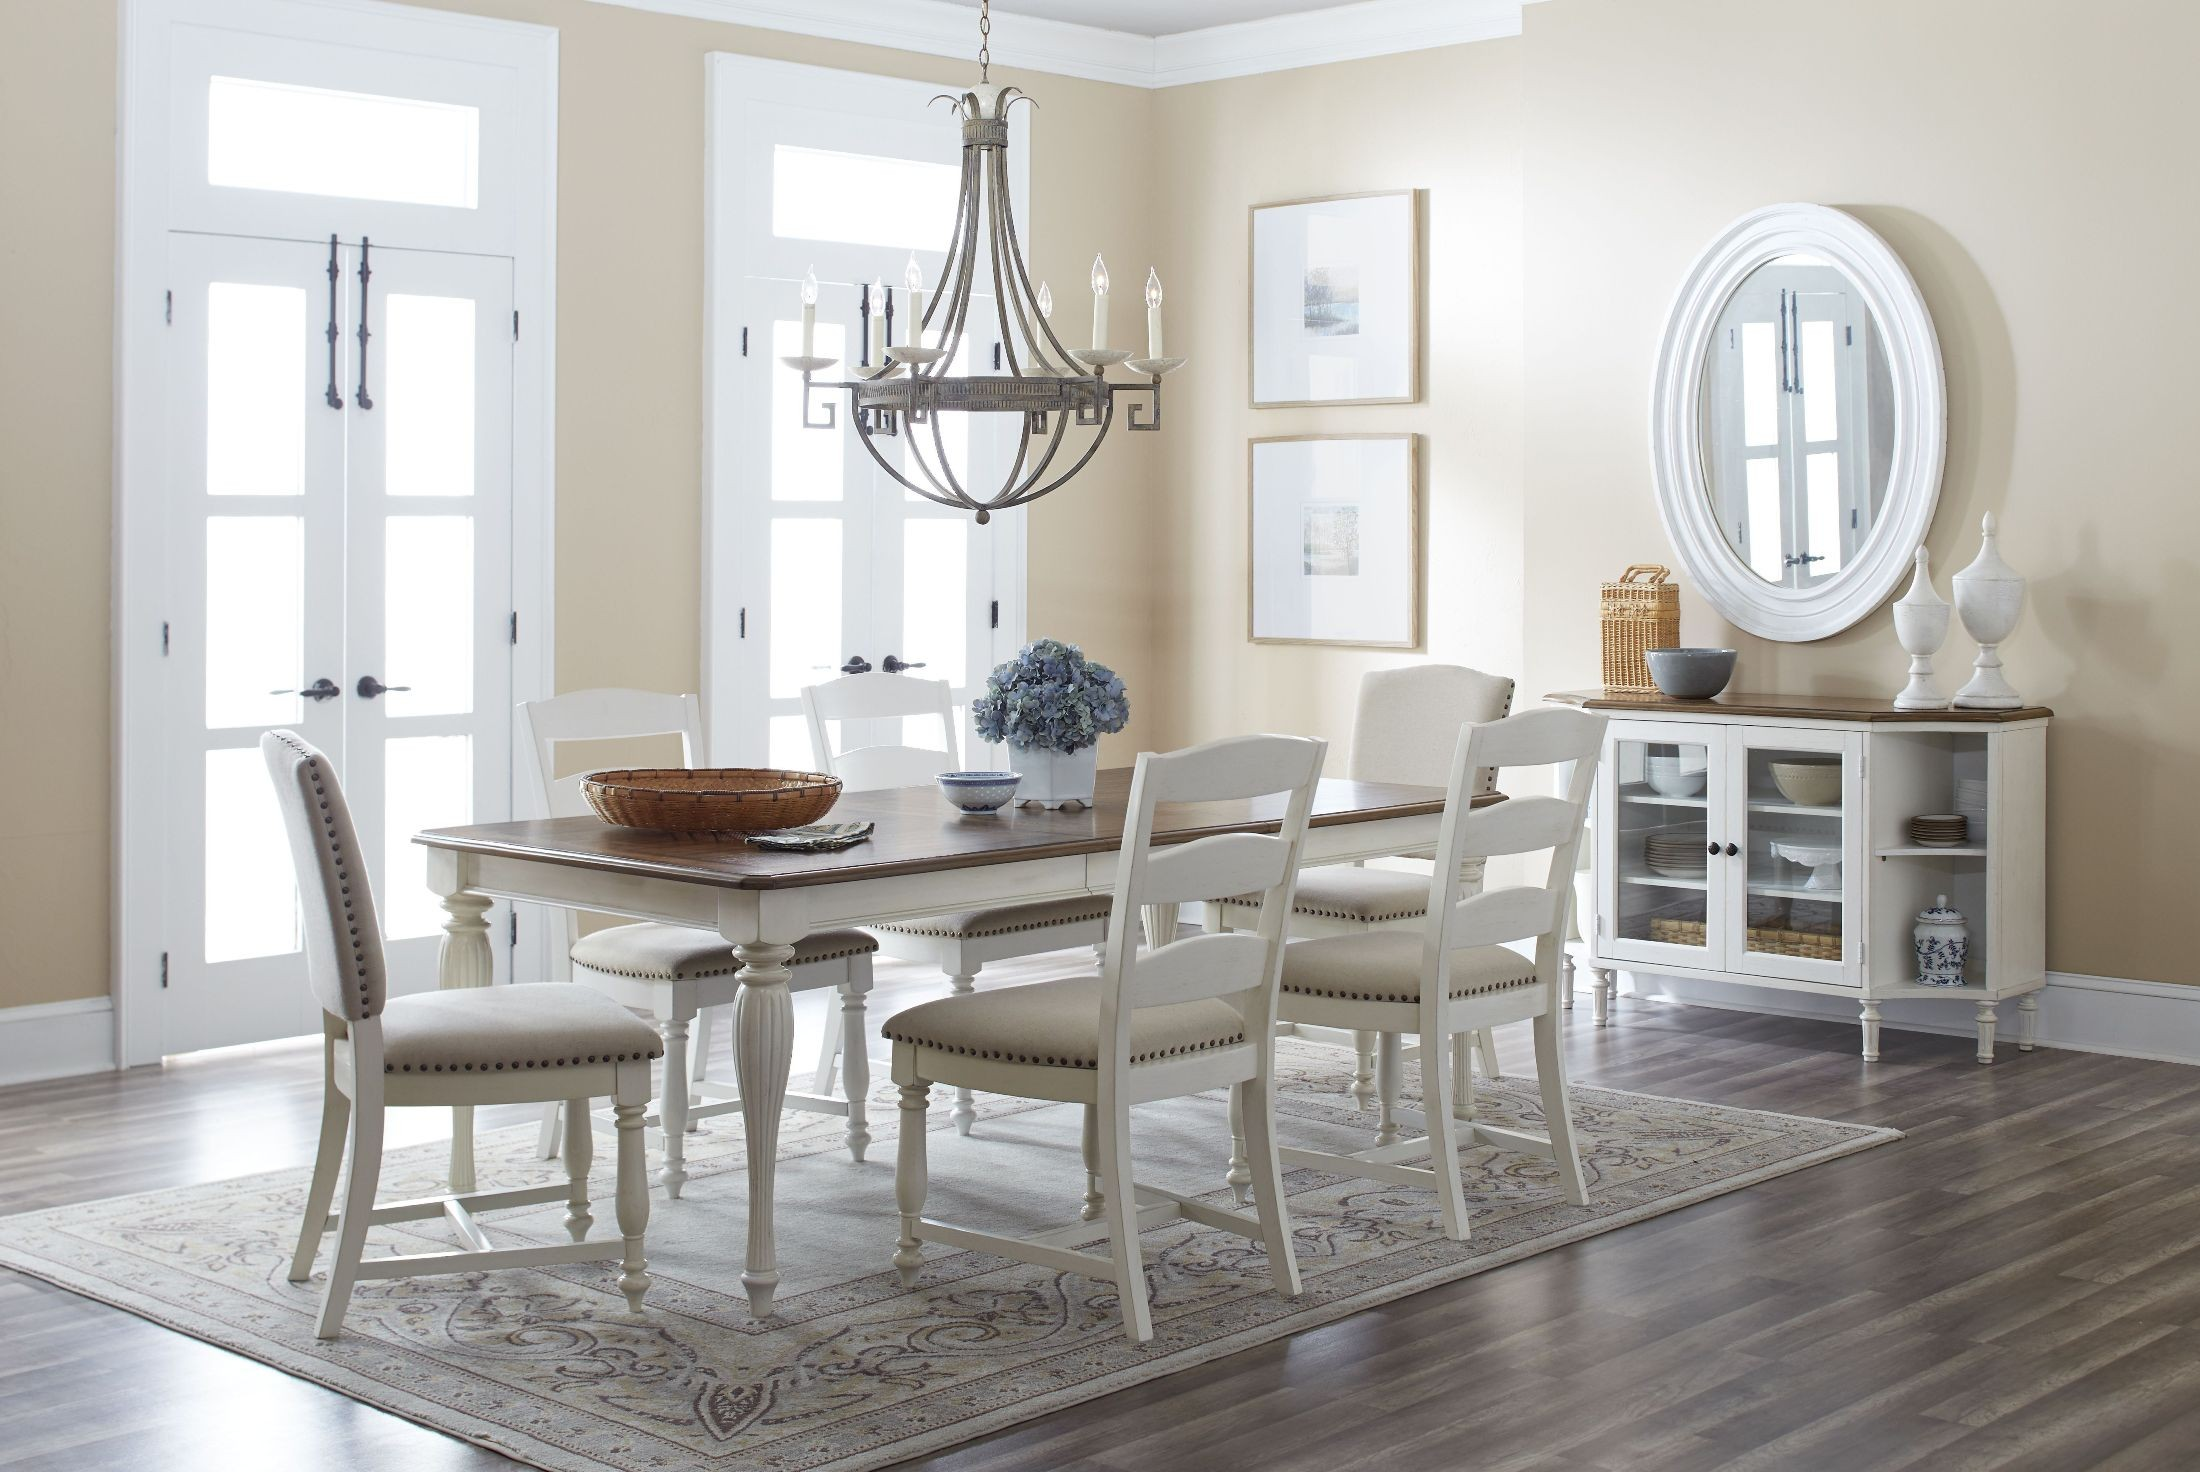 Castle Hill Brown and Cream Extendable Dining Room Set from Jofran ...